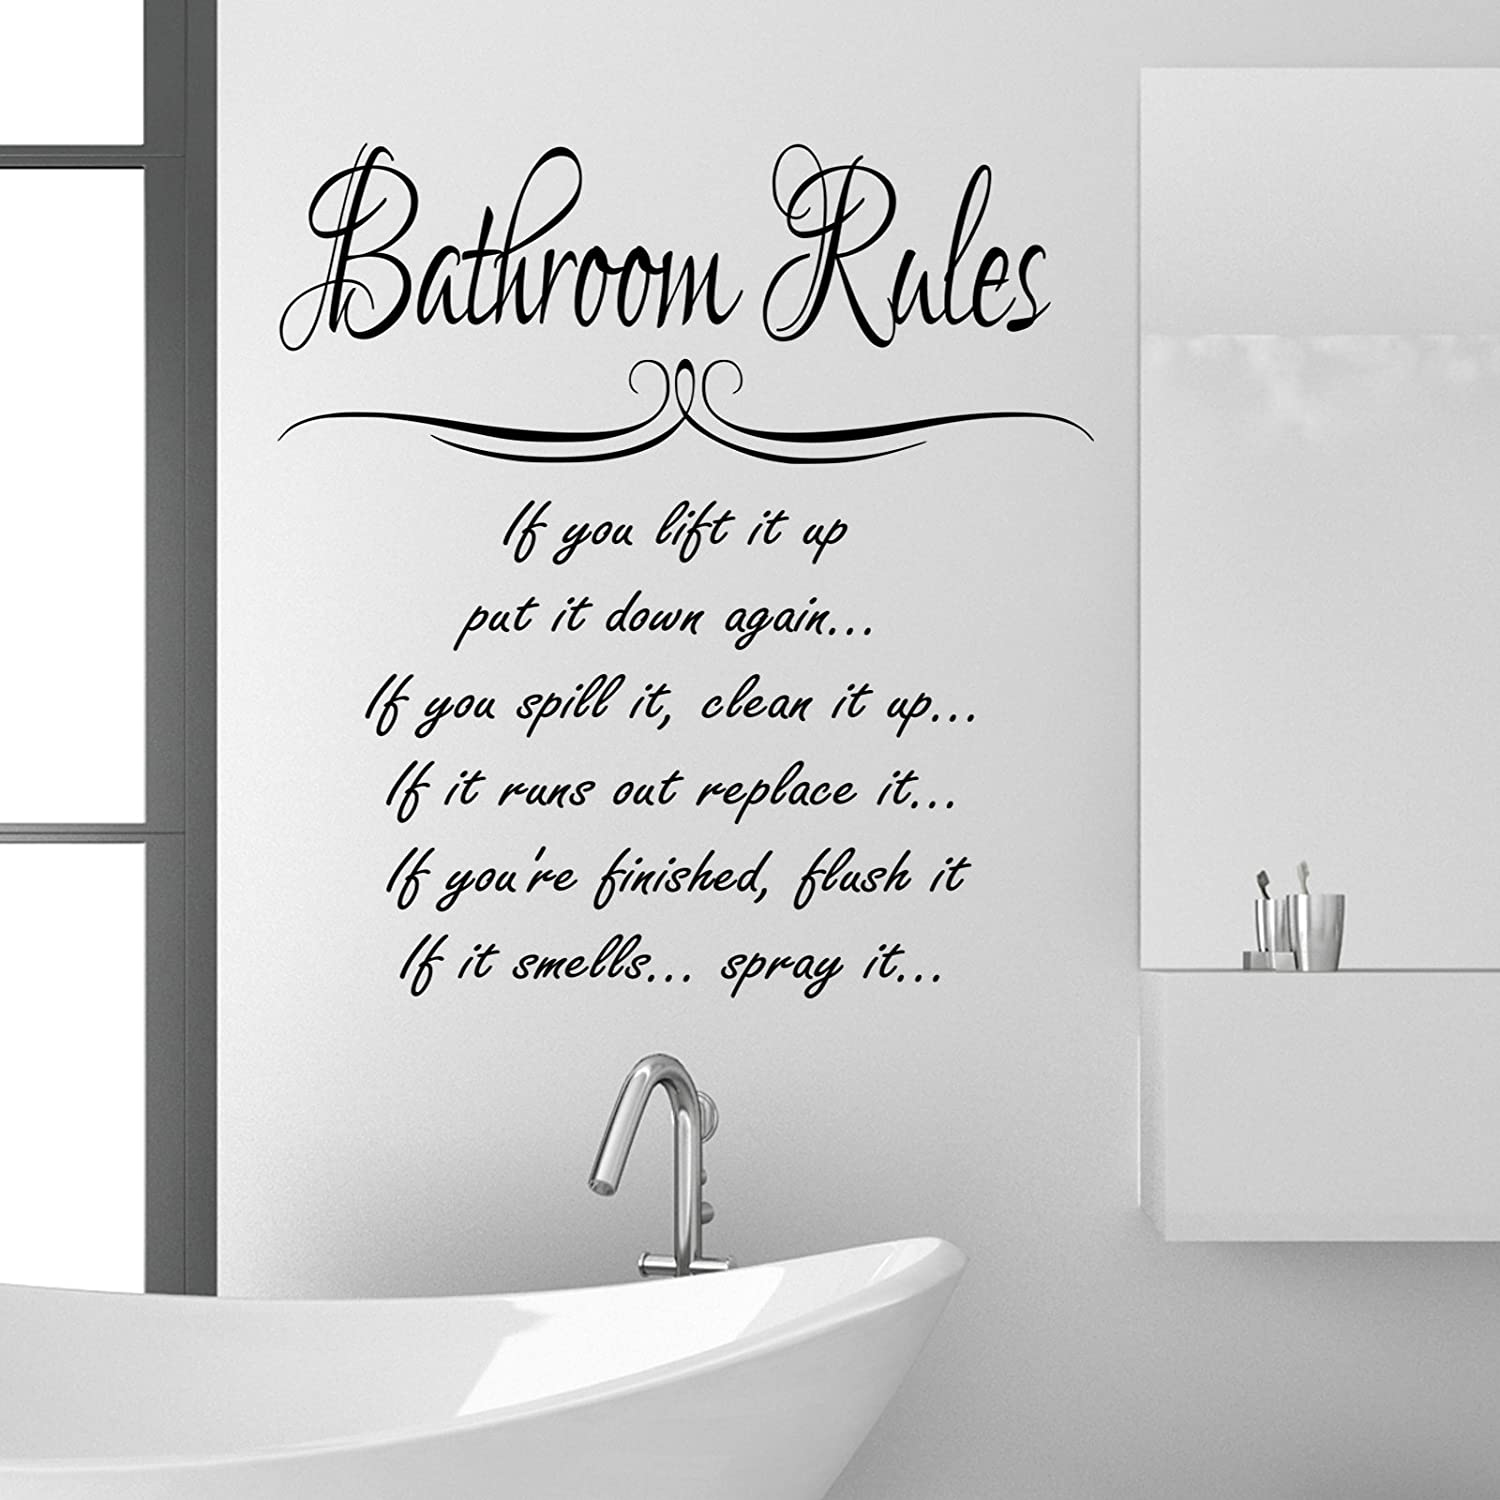 Bathroom wall art stickers - Bathroom Rules Wall Sticker Quote Funny Vinyl Decal Graphic Transfer Mural Art 55x100 Black Amazon Co Uk Kitchen Home